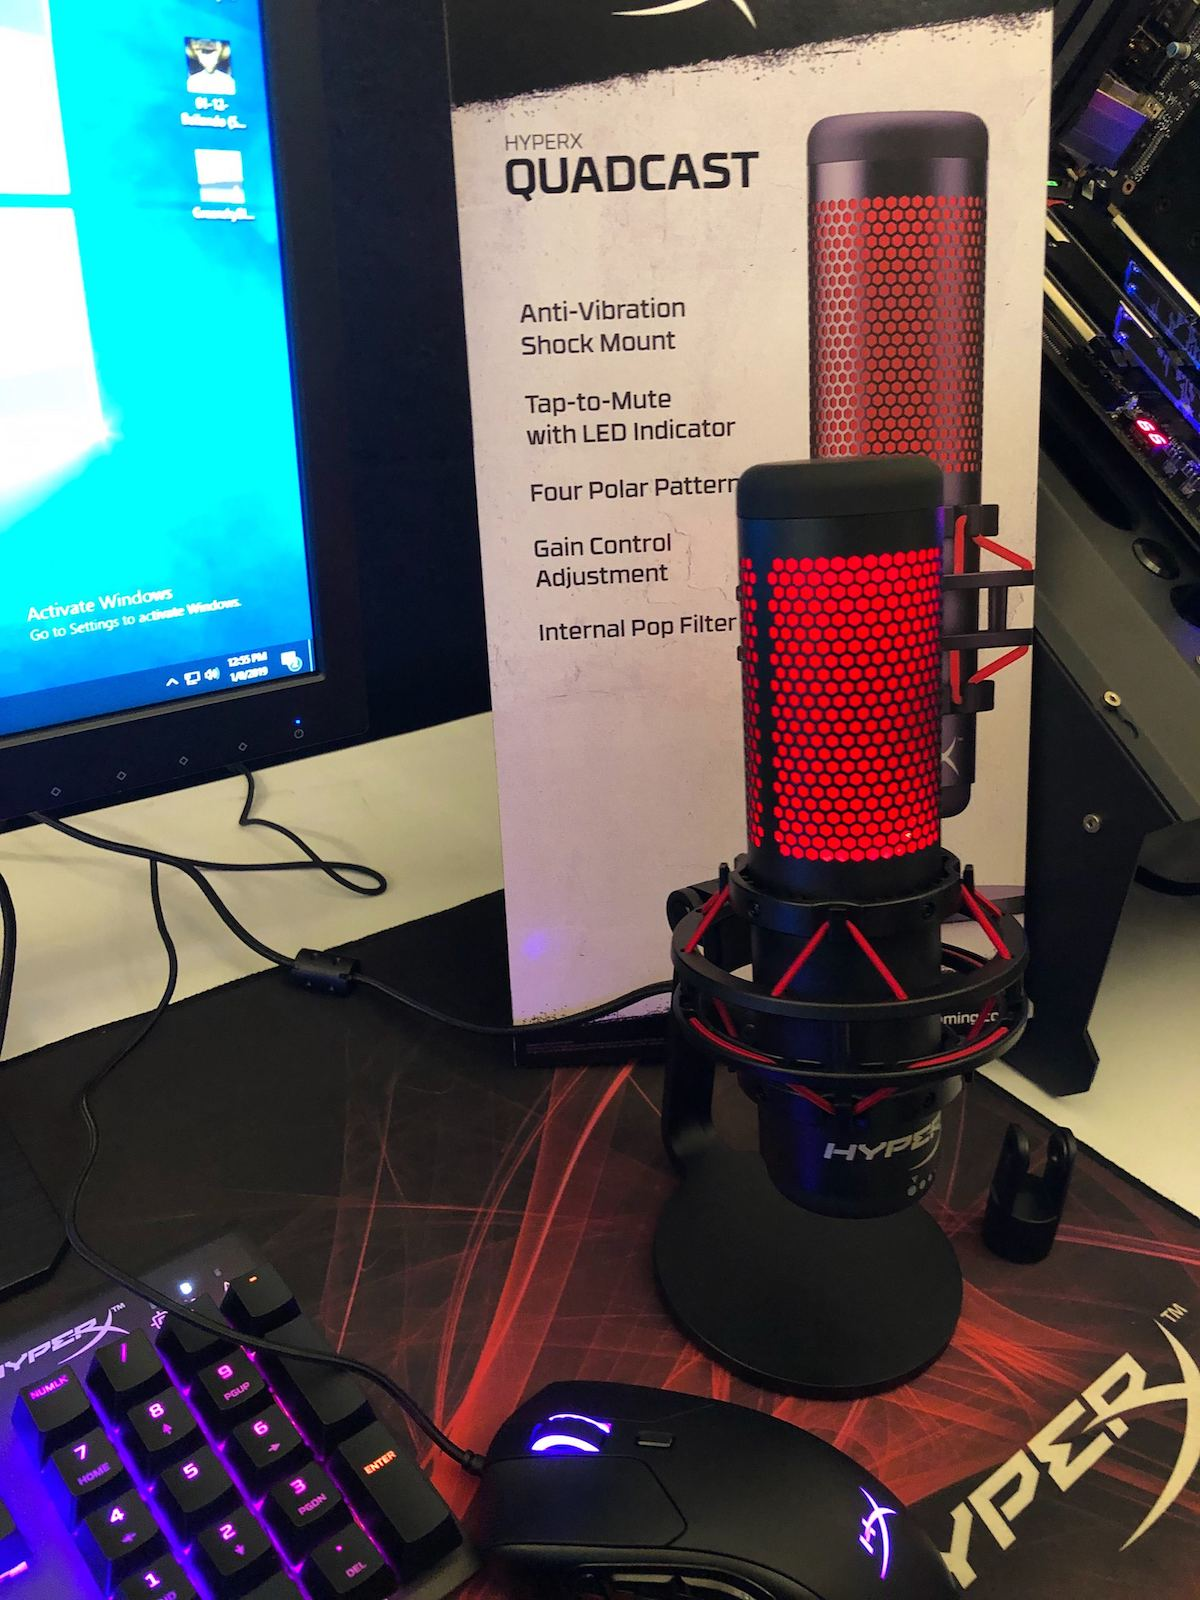 HyperX threw their hat in the gaming mic ring with their announcement of the impressive Quadcast mic at CES 2019.